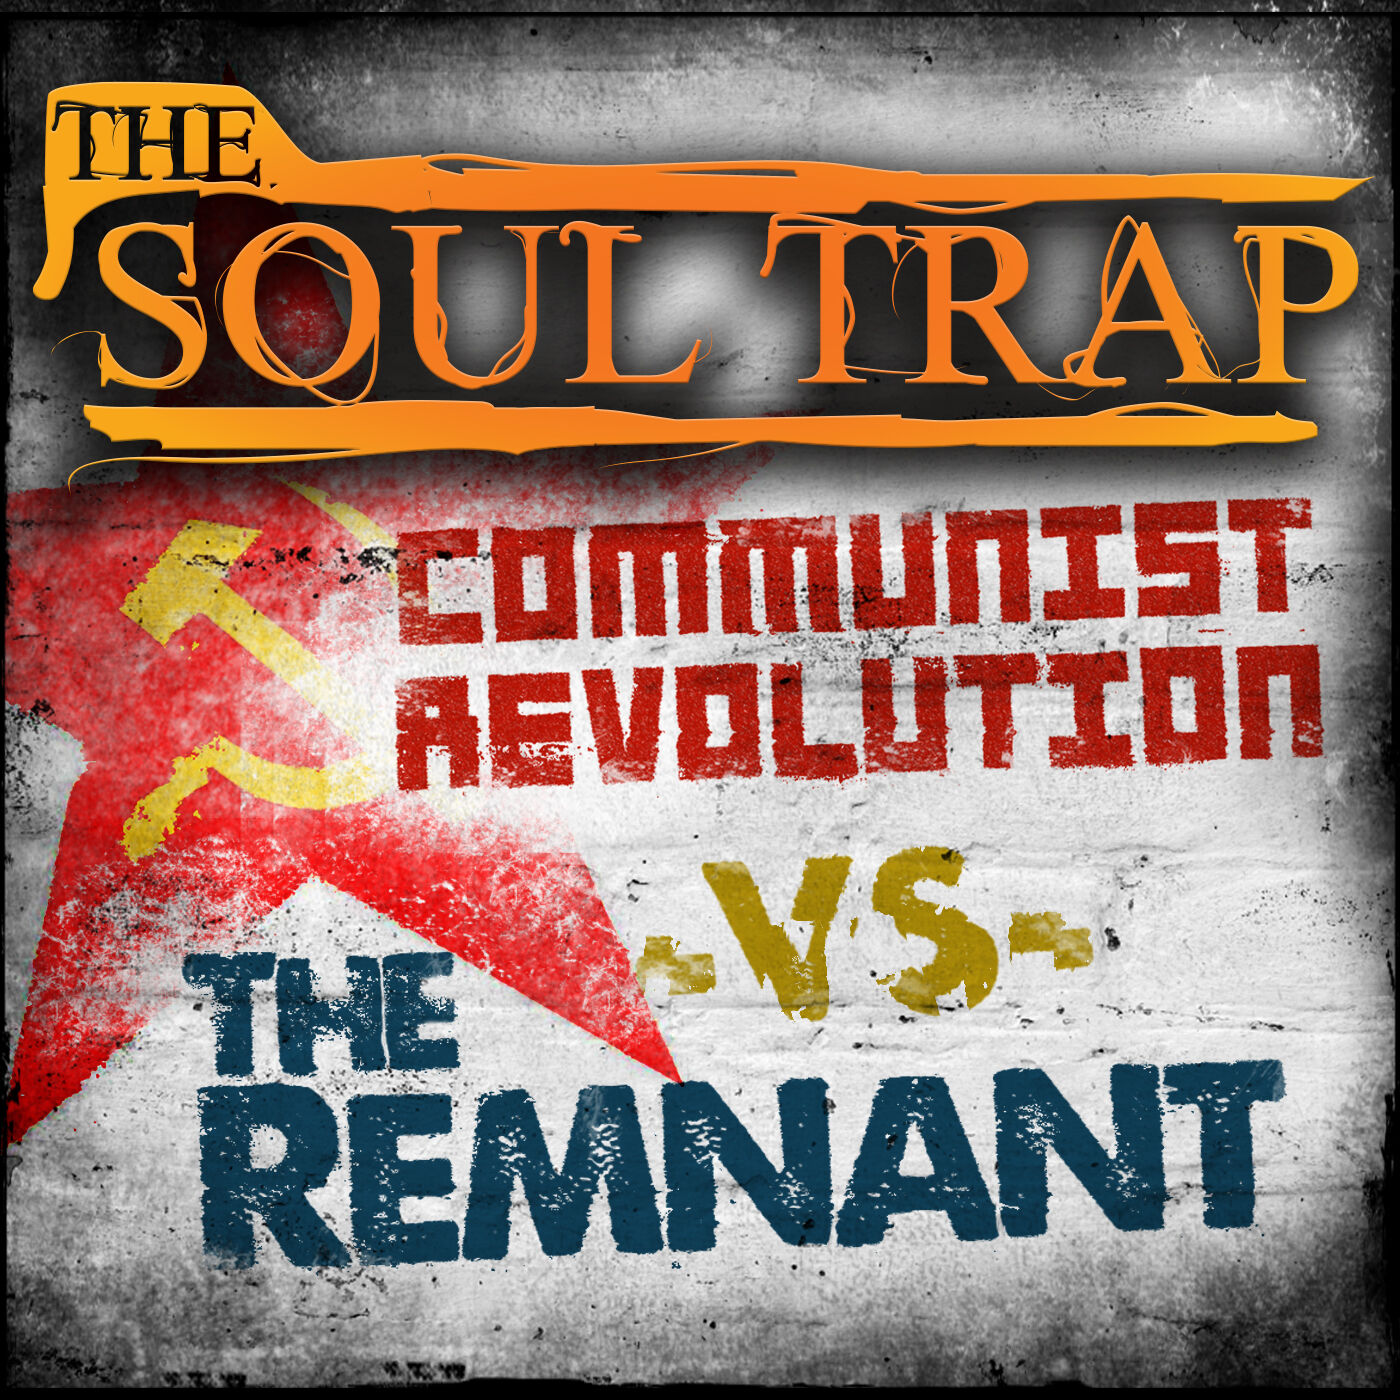 The Communist Revolution vs The Remnant